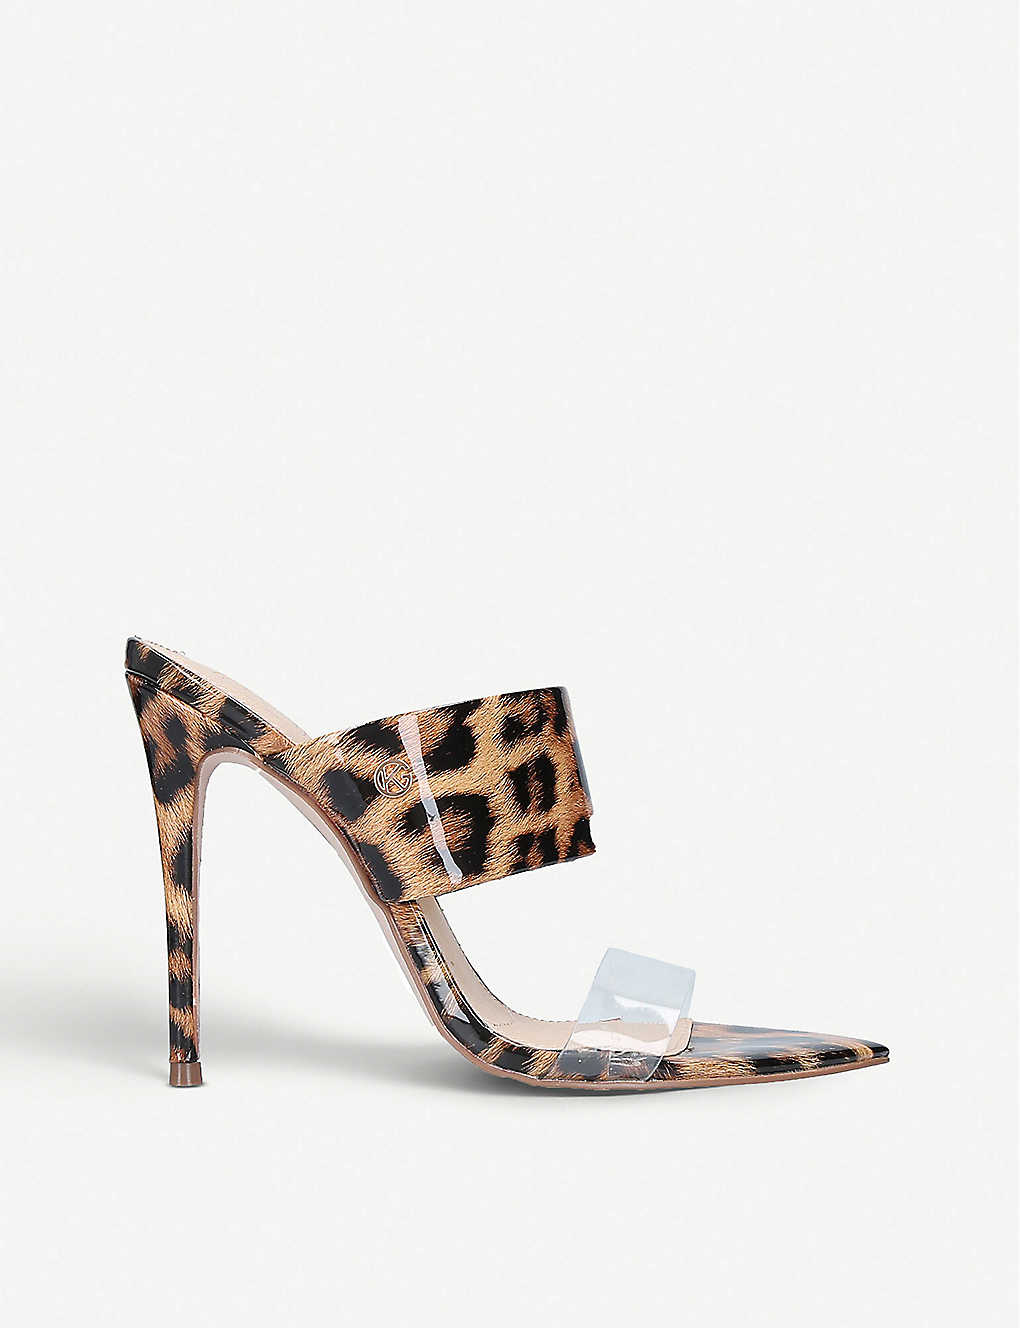 KG KURT GEIGER: Faye strappy sandals